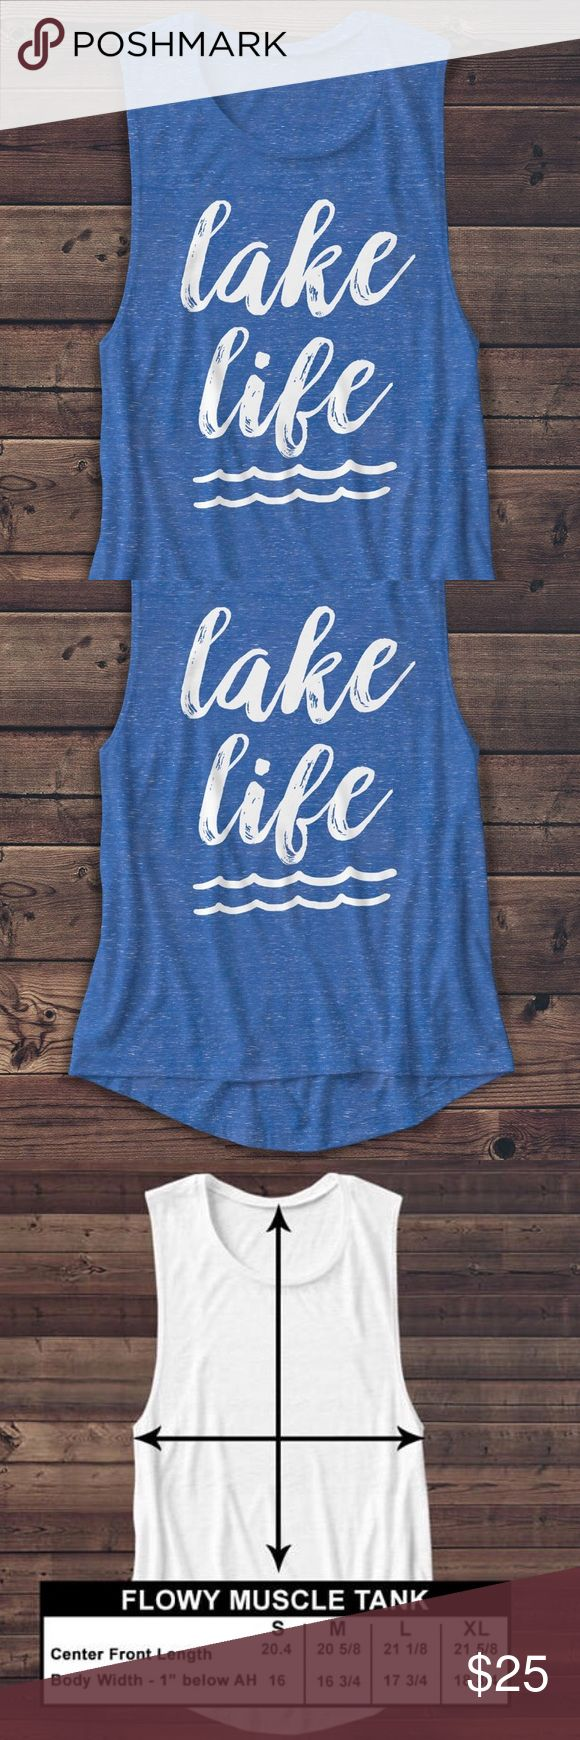 LAKE LIFE MUSCLE TEE New Women's Graphic Crewneck Muscle Tshirt  *100% Preshrunk cotton *Weight: 5 oz *Seamless rib at neck *Taped shoulder-to-shoulder Tops Muscle Tees